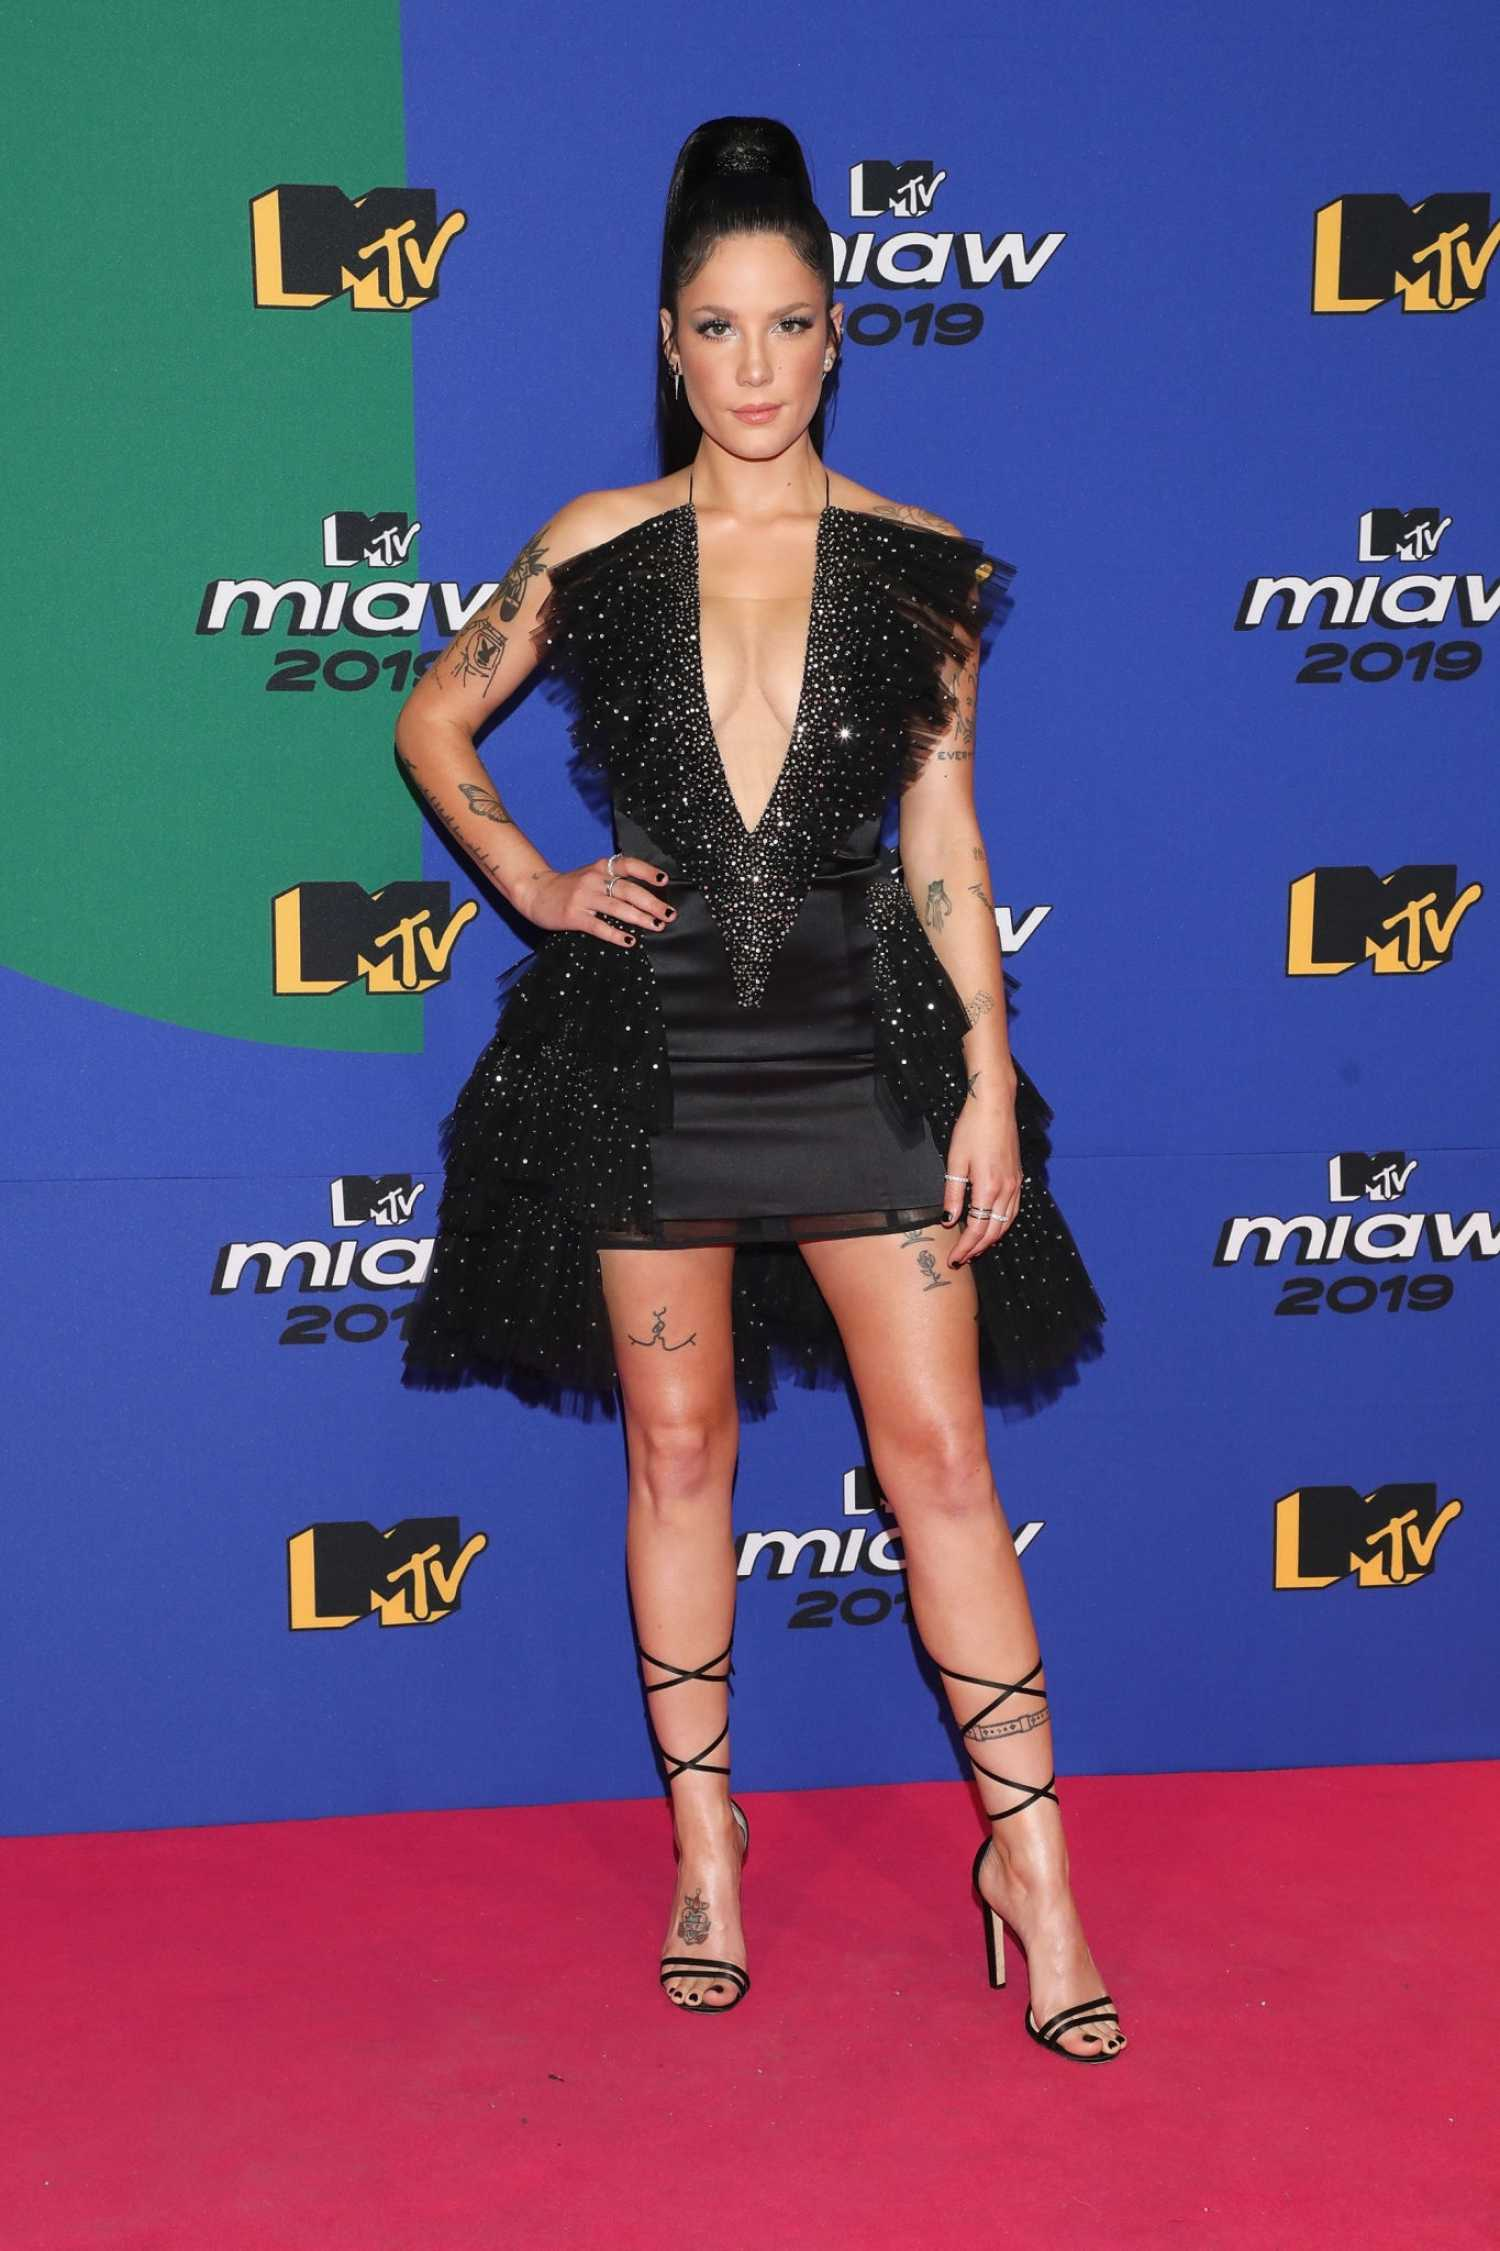 Halsey Attends The Mtv Miaw Awards In Mexico City Celeb